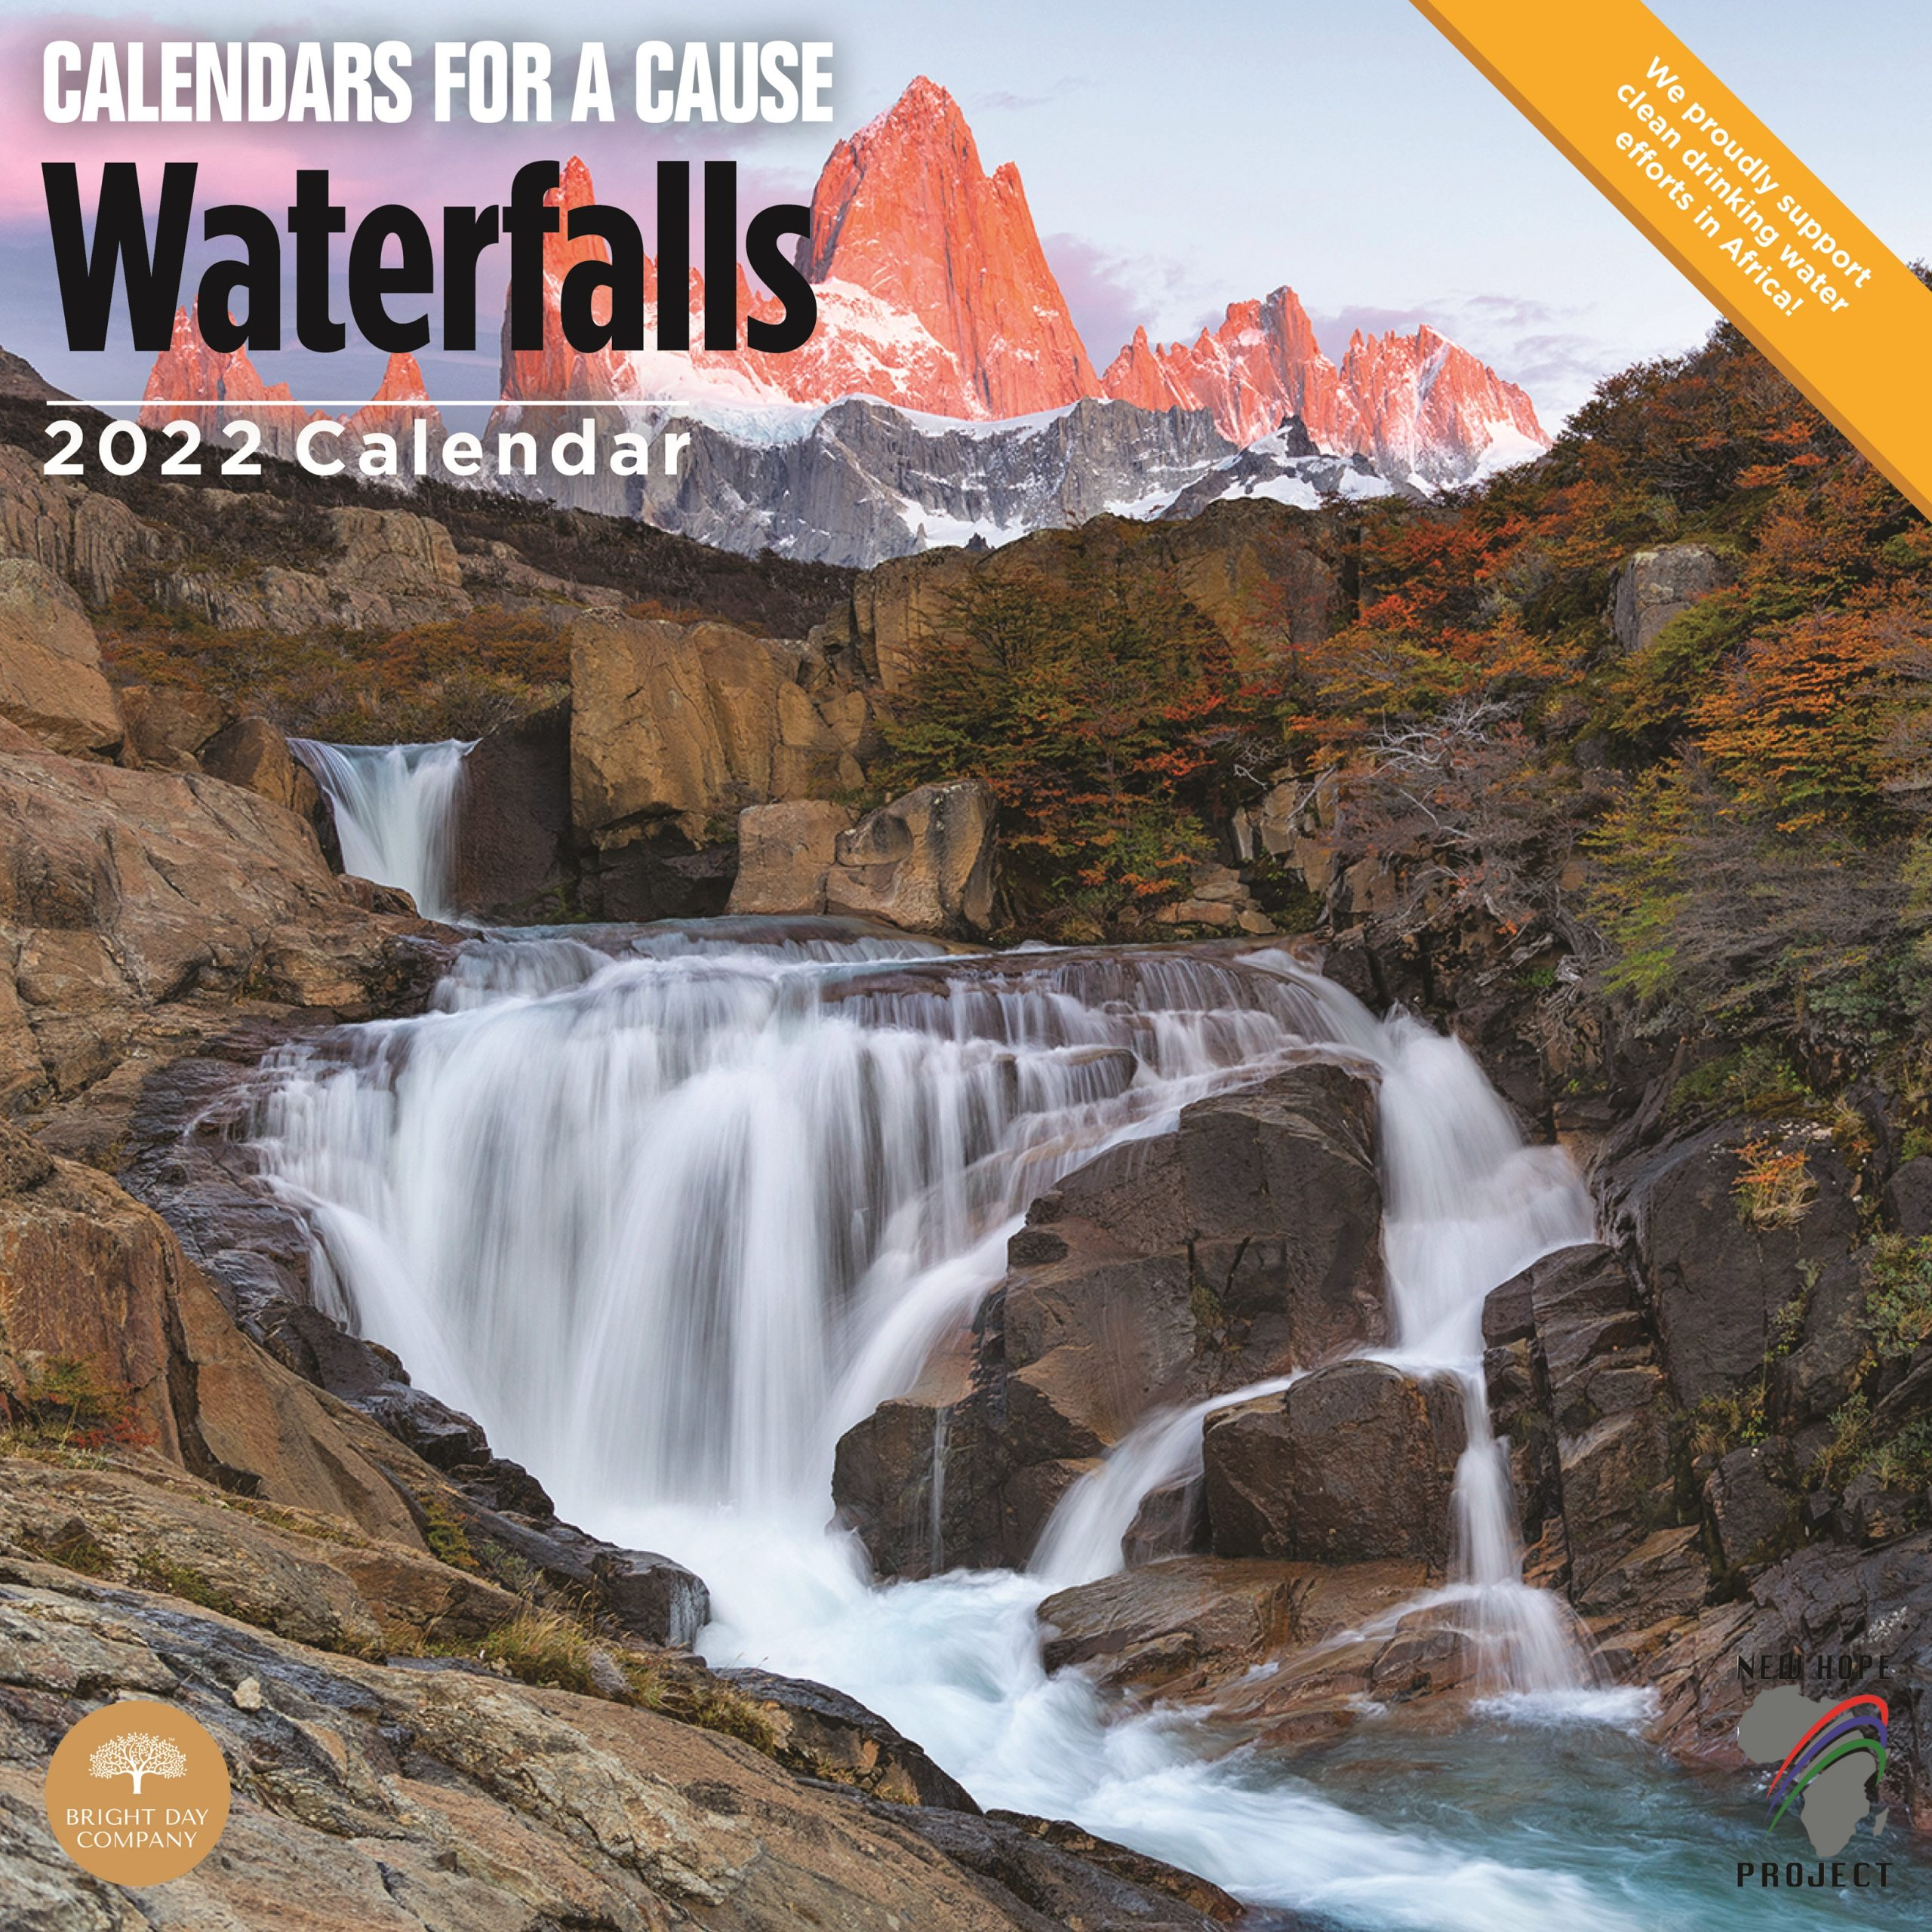 2022 Waterfalls Calendars for a Cause Wall Calendar by Bright Day, 12 x 12 Inch